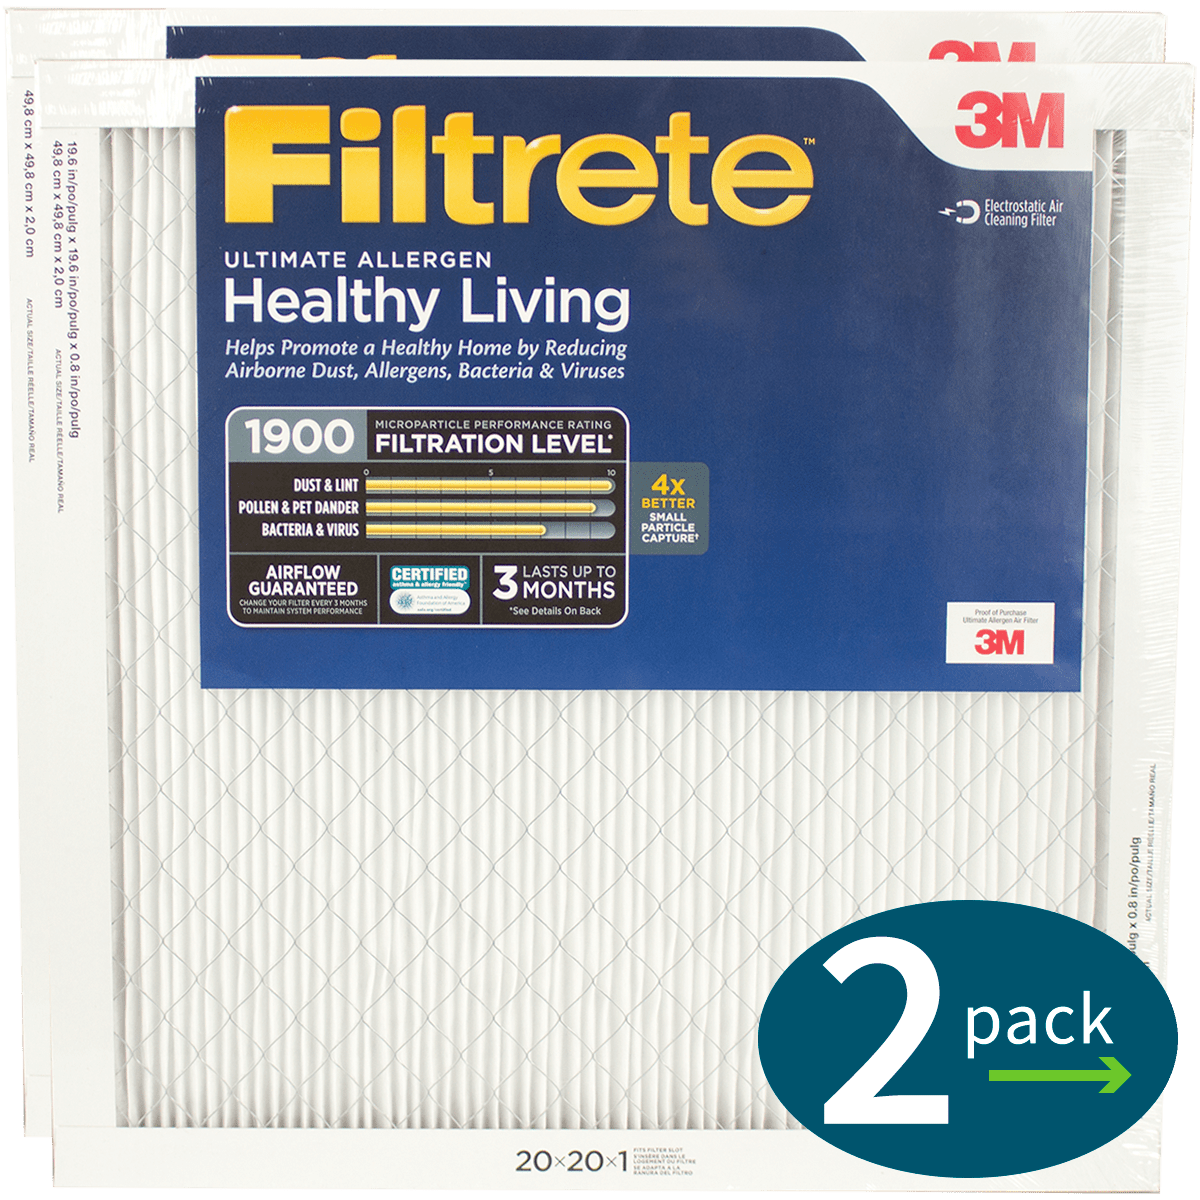 3M Filtrete Healthy Living 1900 MPR Ultimate Allergen Reduction Air Filters fi5343